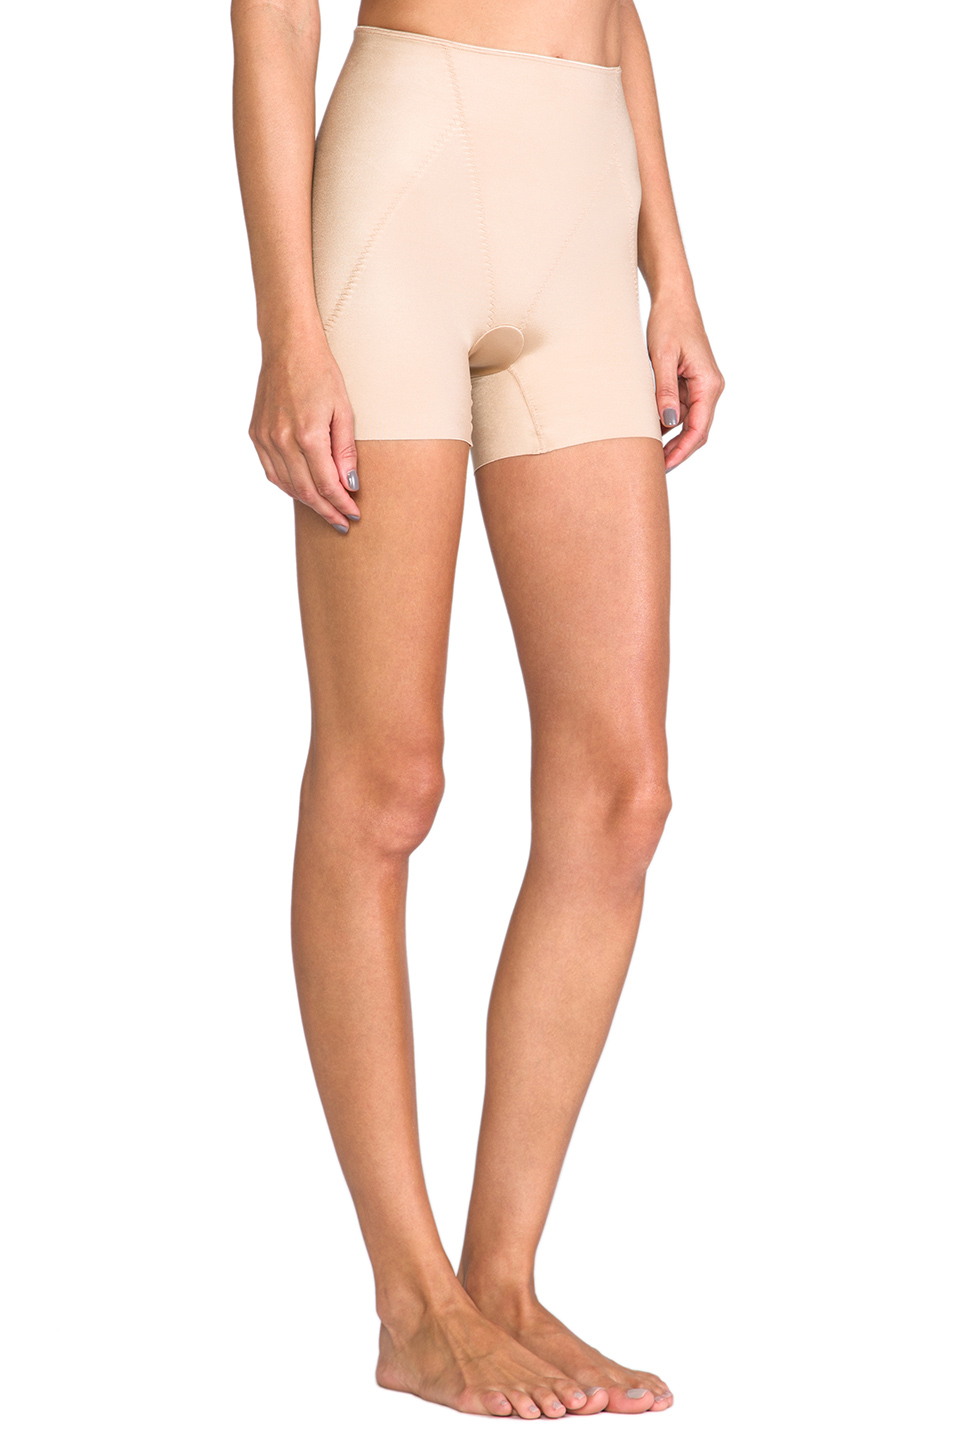 49fd9b2df Spanx Slimplicity Booty Booster Short in Natural - Lyst